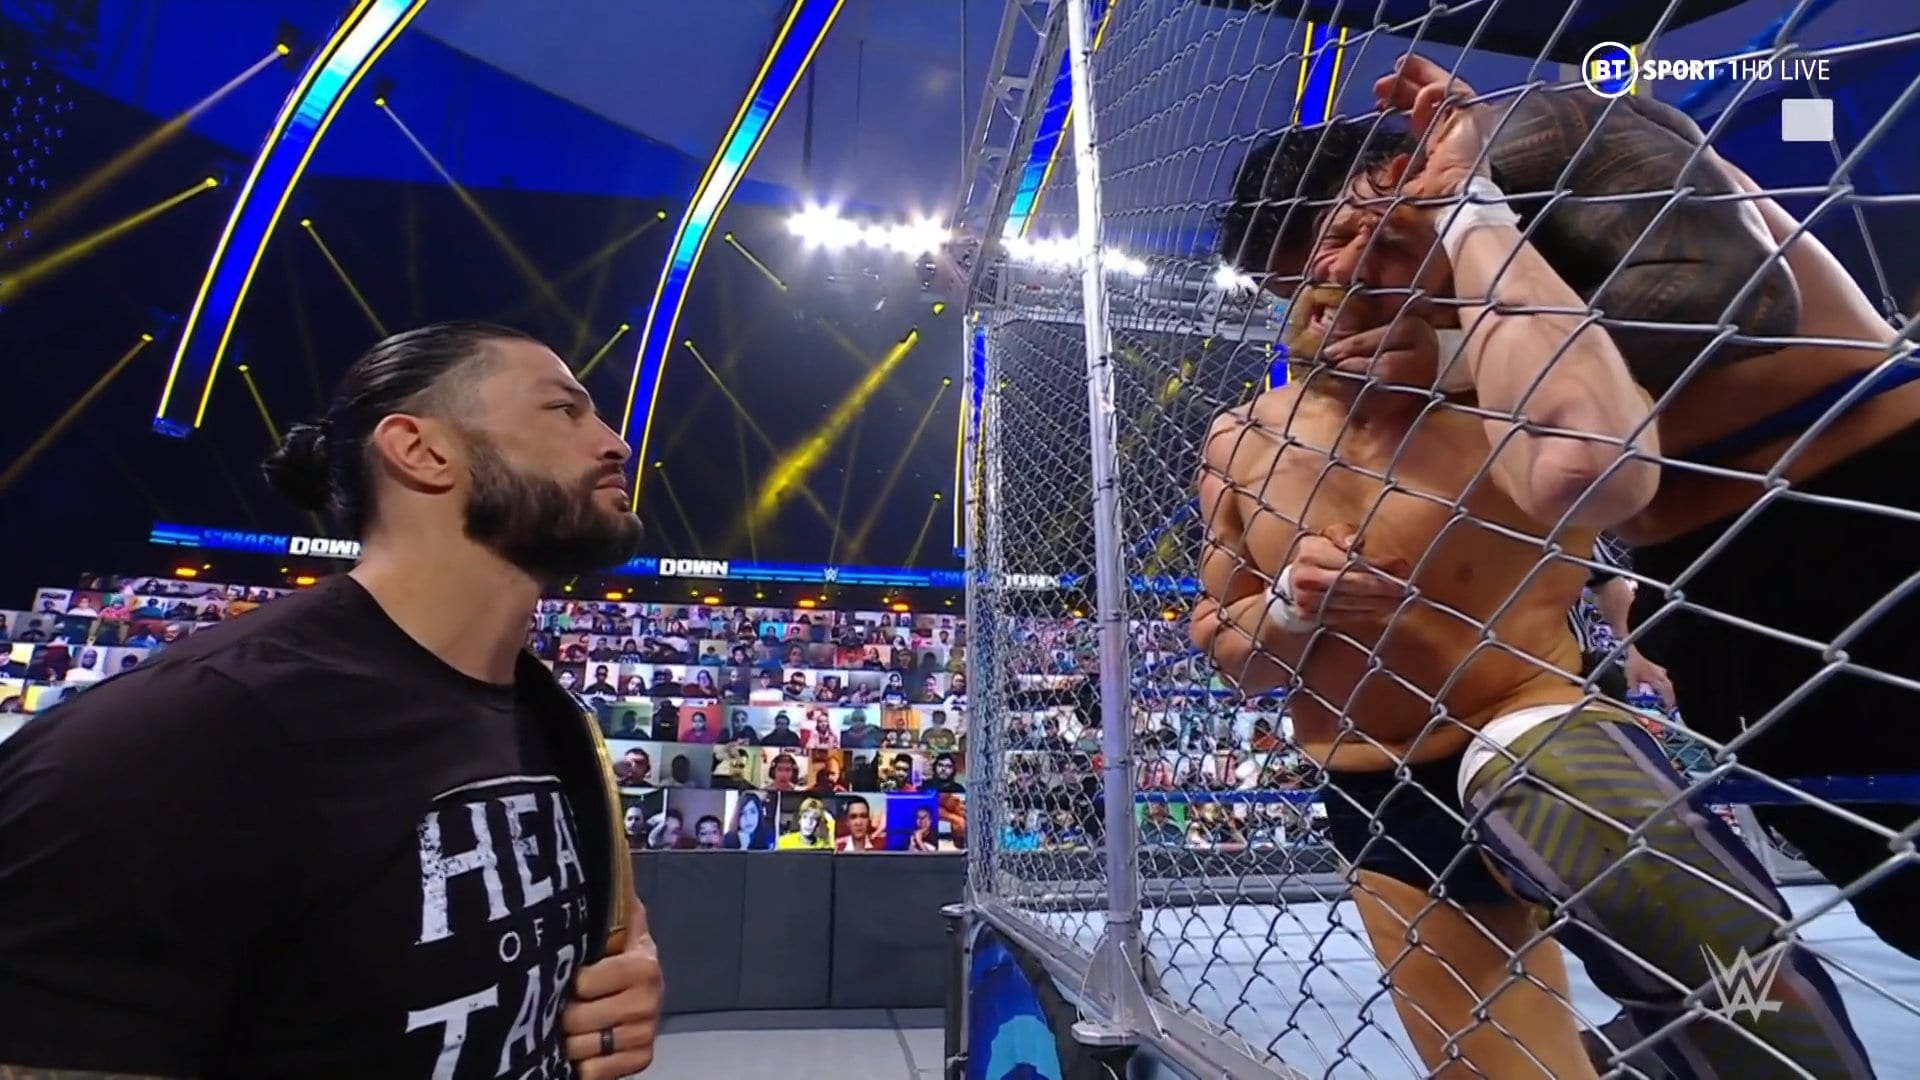 WWE SmackDown Results – Steel Cage Main Event, Shayna Baszler Vs. Bianca Belair, More